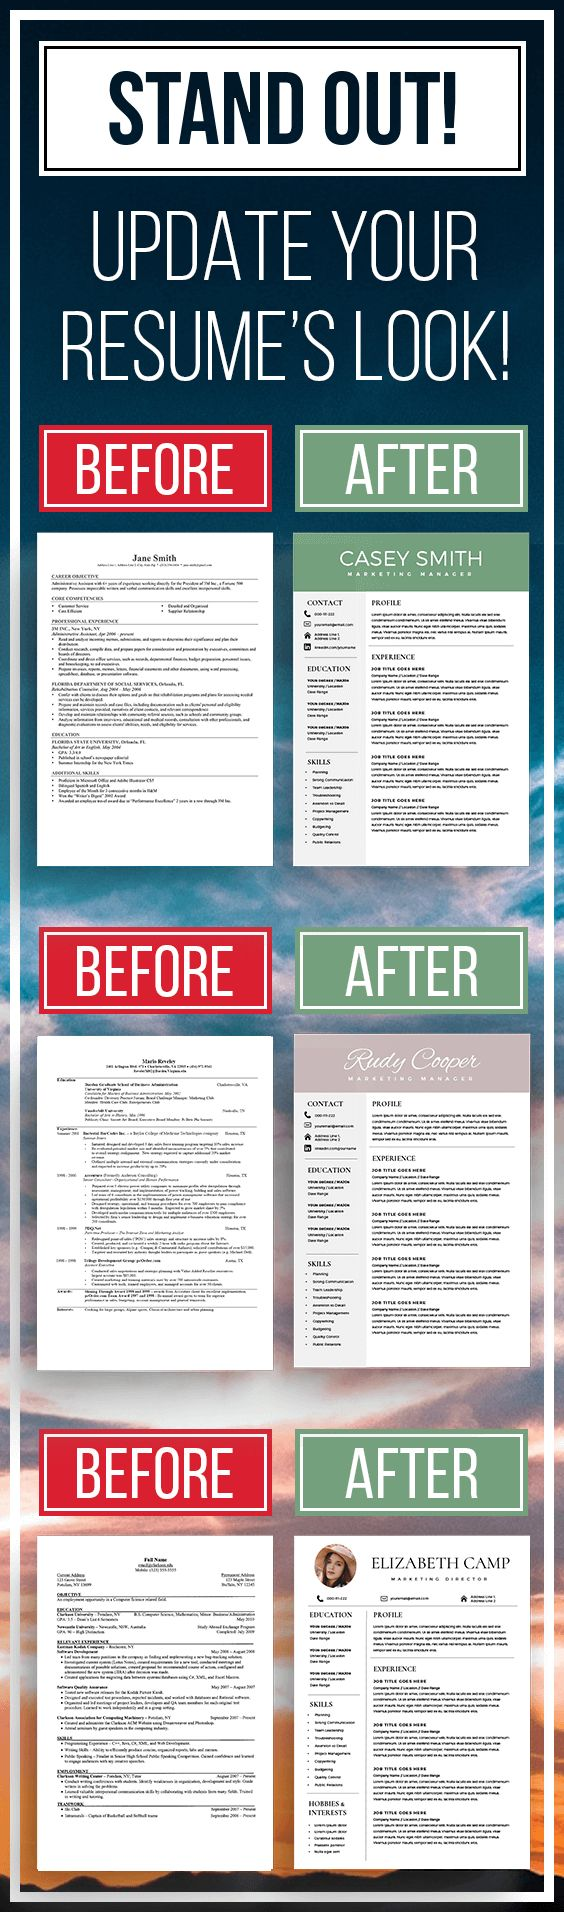 Stand Out Updates Your ResumeS Look Modern Resumes  Darling